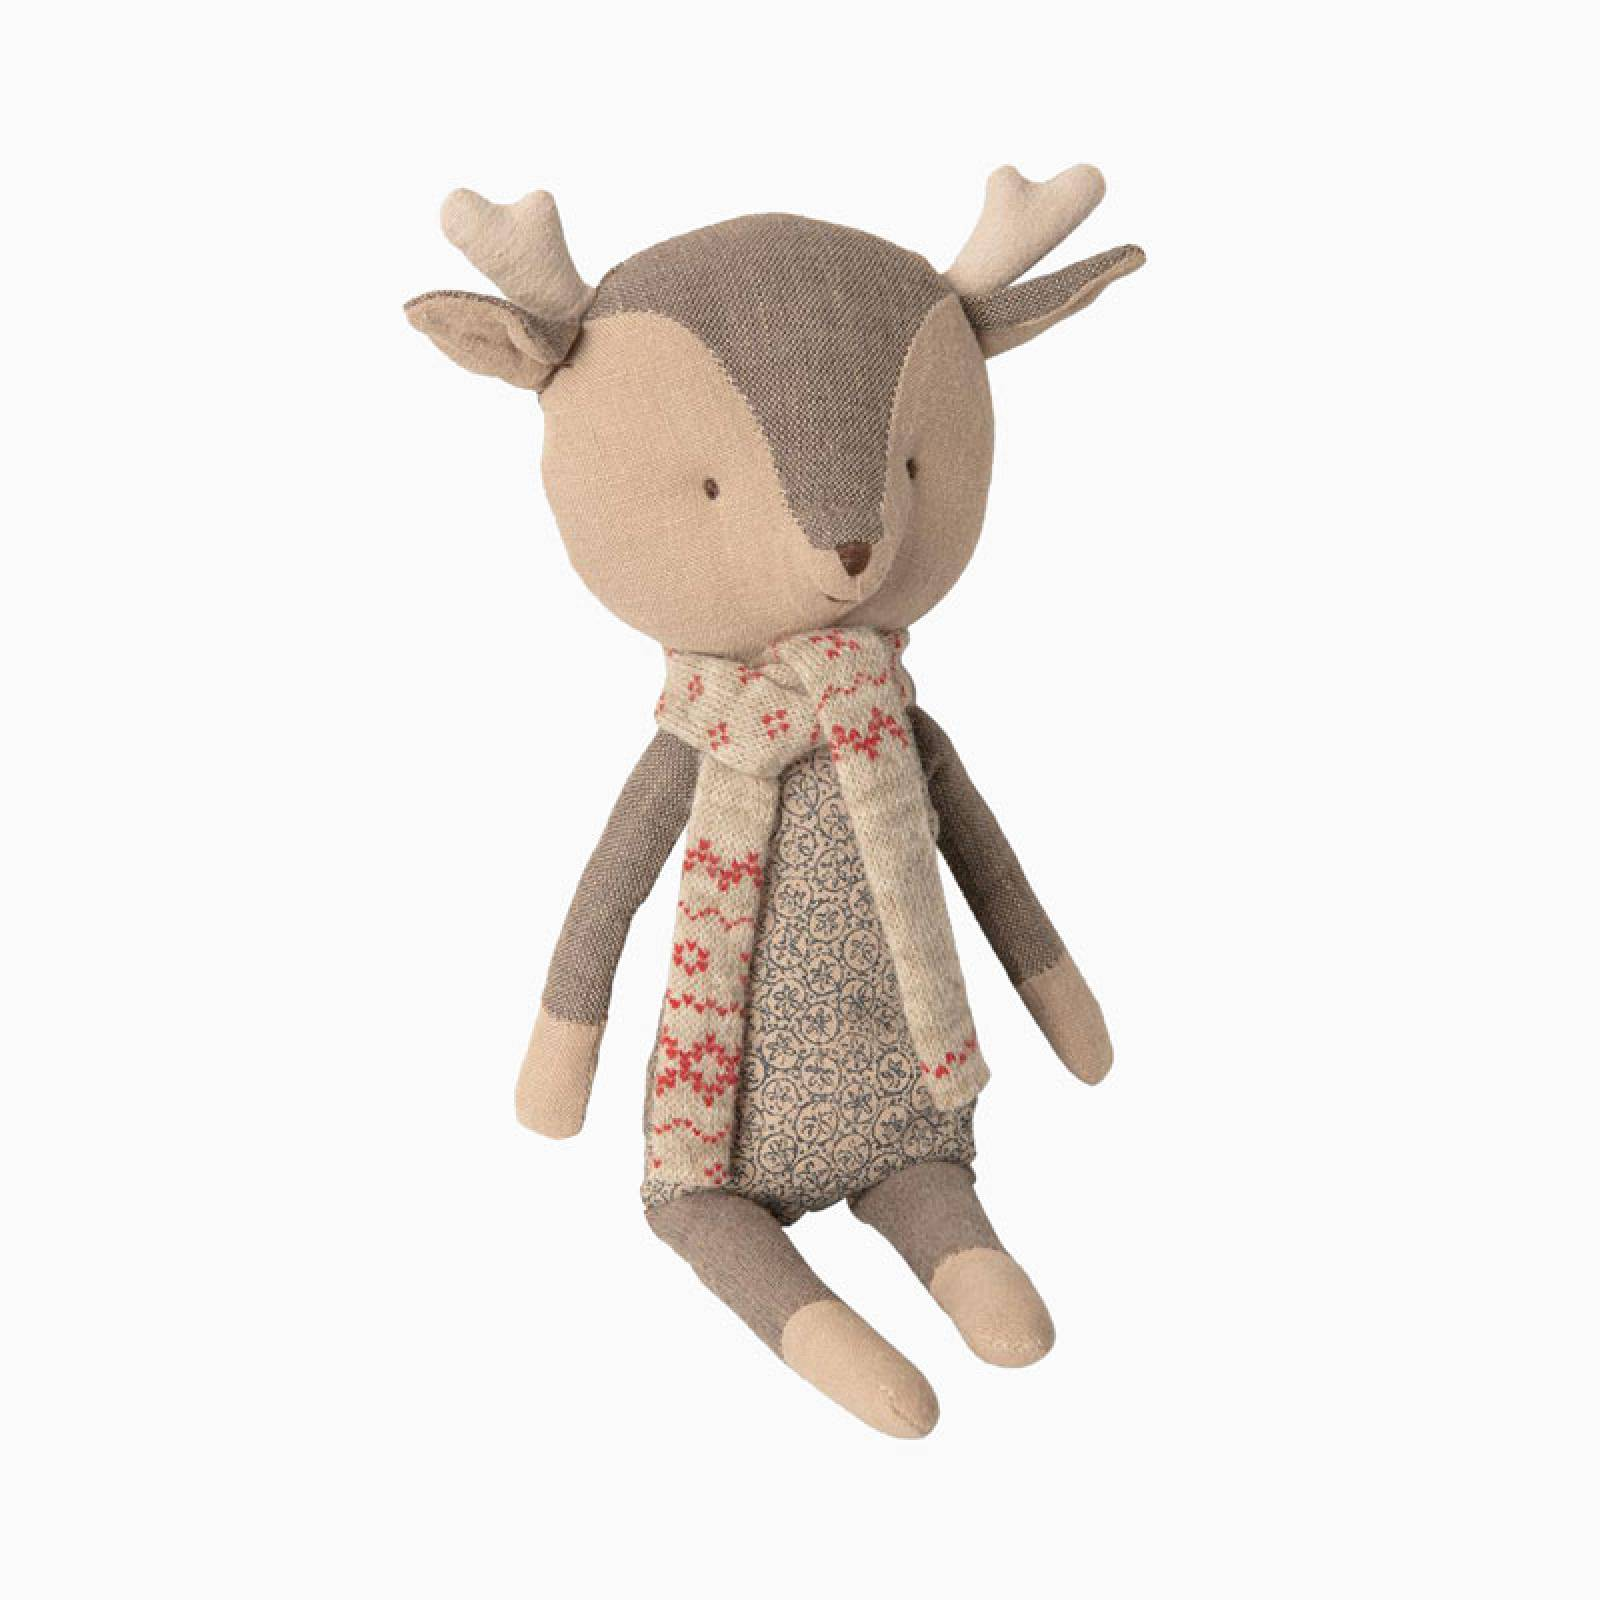 Winter Friends - Reindeer - Soft Toy By Maileg 0+